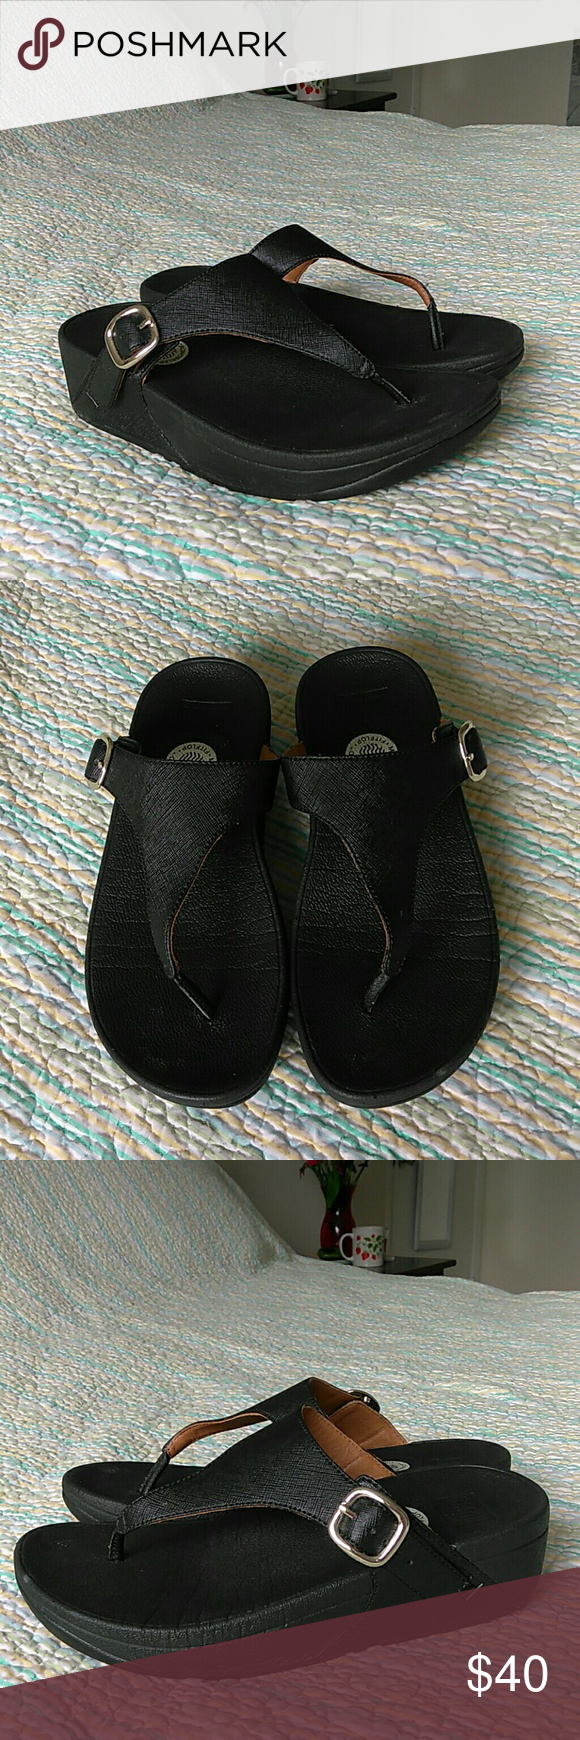 6227dd84e66cec Fitflop Skinny Deluxe 458-001 Black Thong Sandal 5 Fitflop Skinny Deluxe 458 -001 Black Thong Flip Flop Fitness Sandals Size 5 36 Fitflop Shoes Sandals